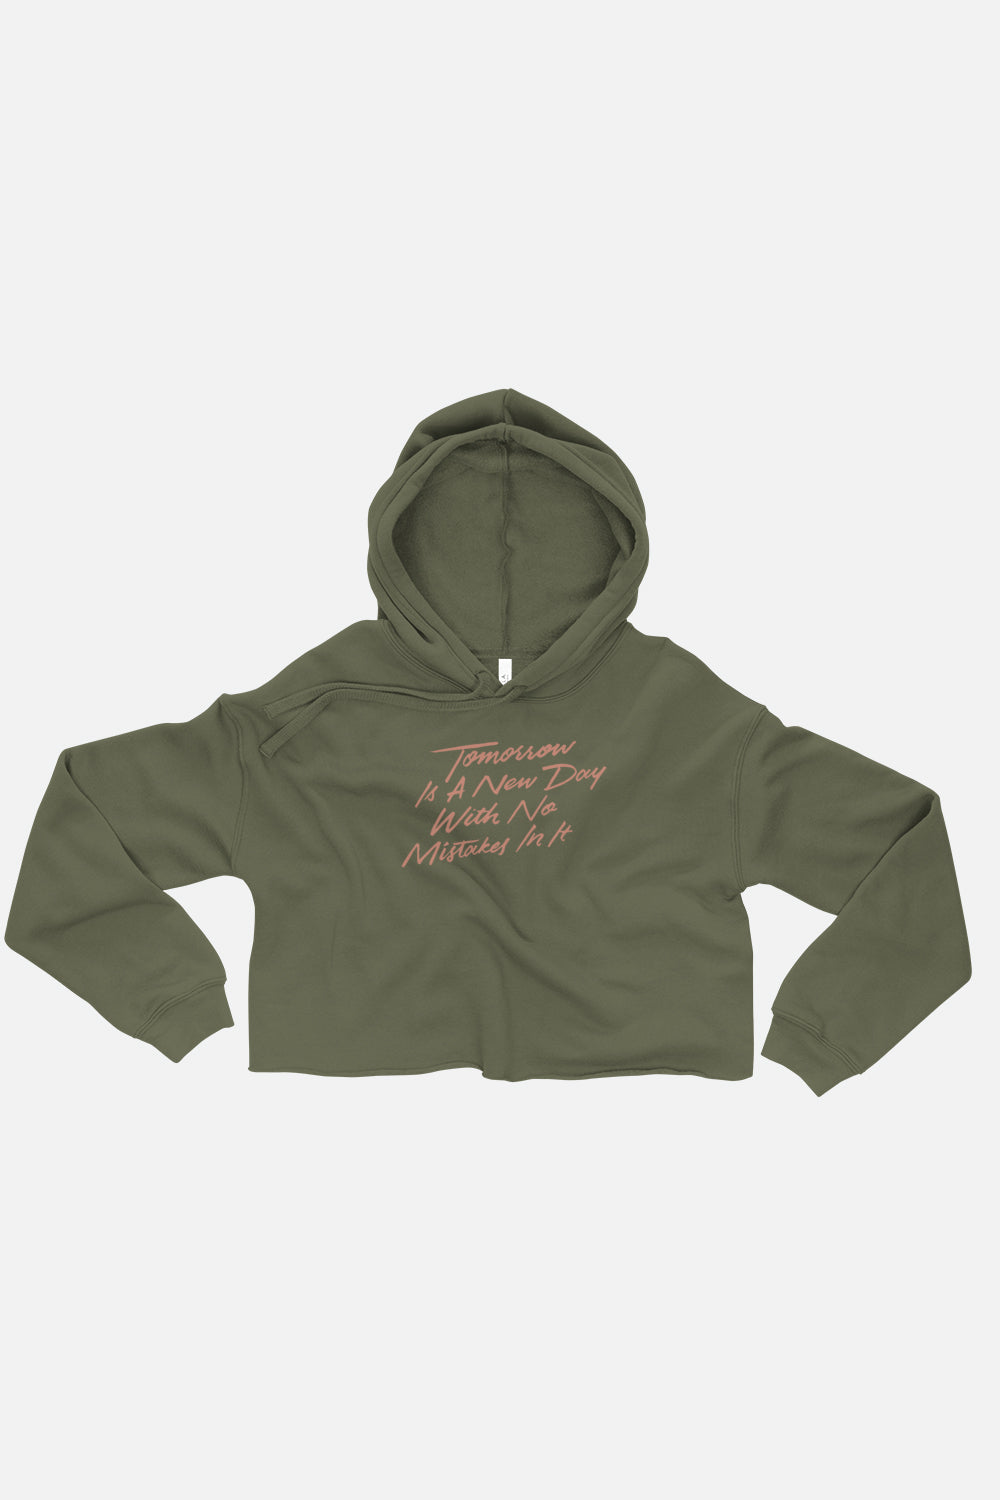 Tomorrow is a New Day Fitted Crop Hoodie | Anne of Green Gables